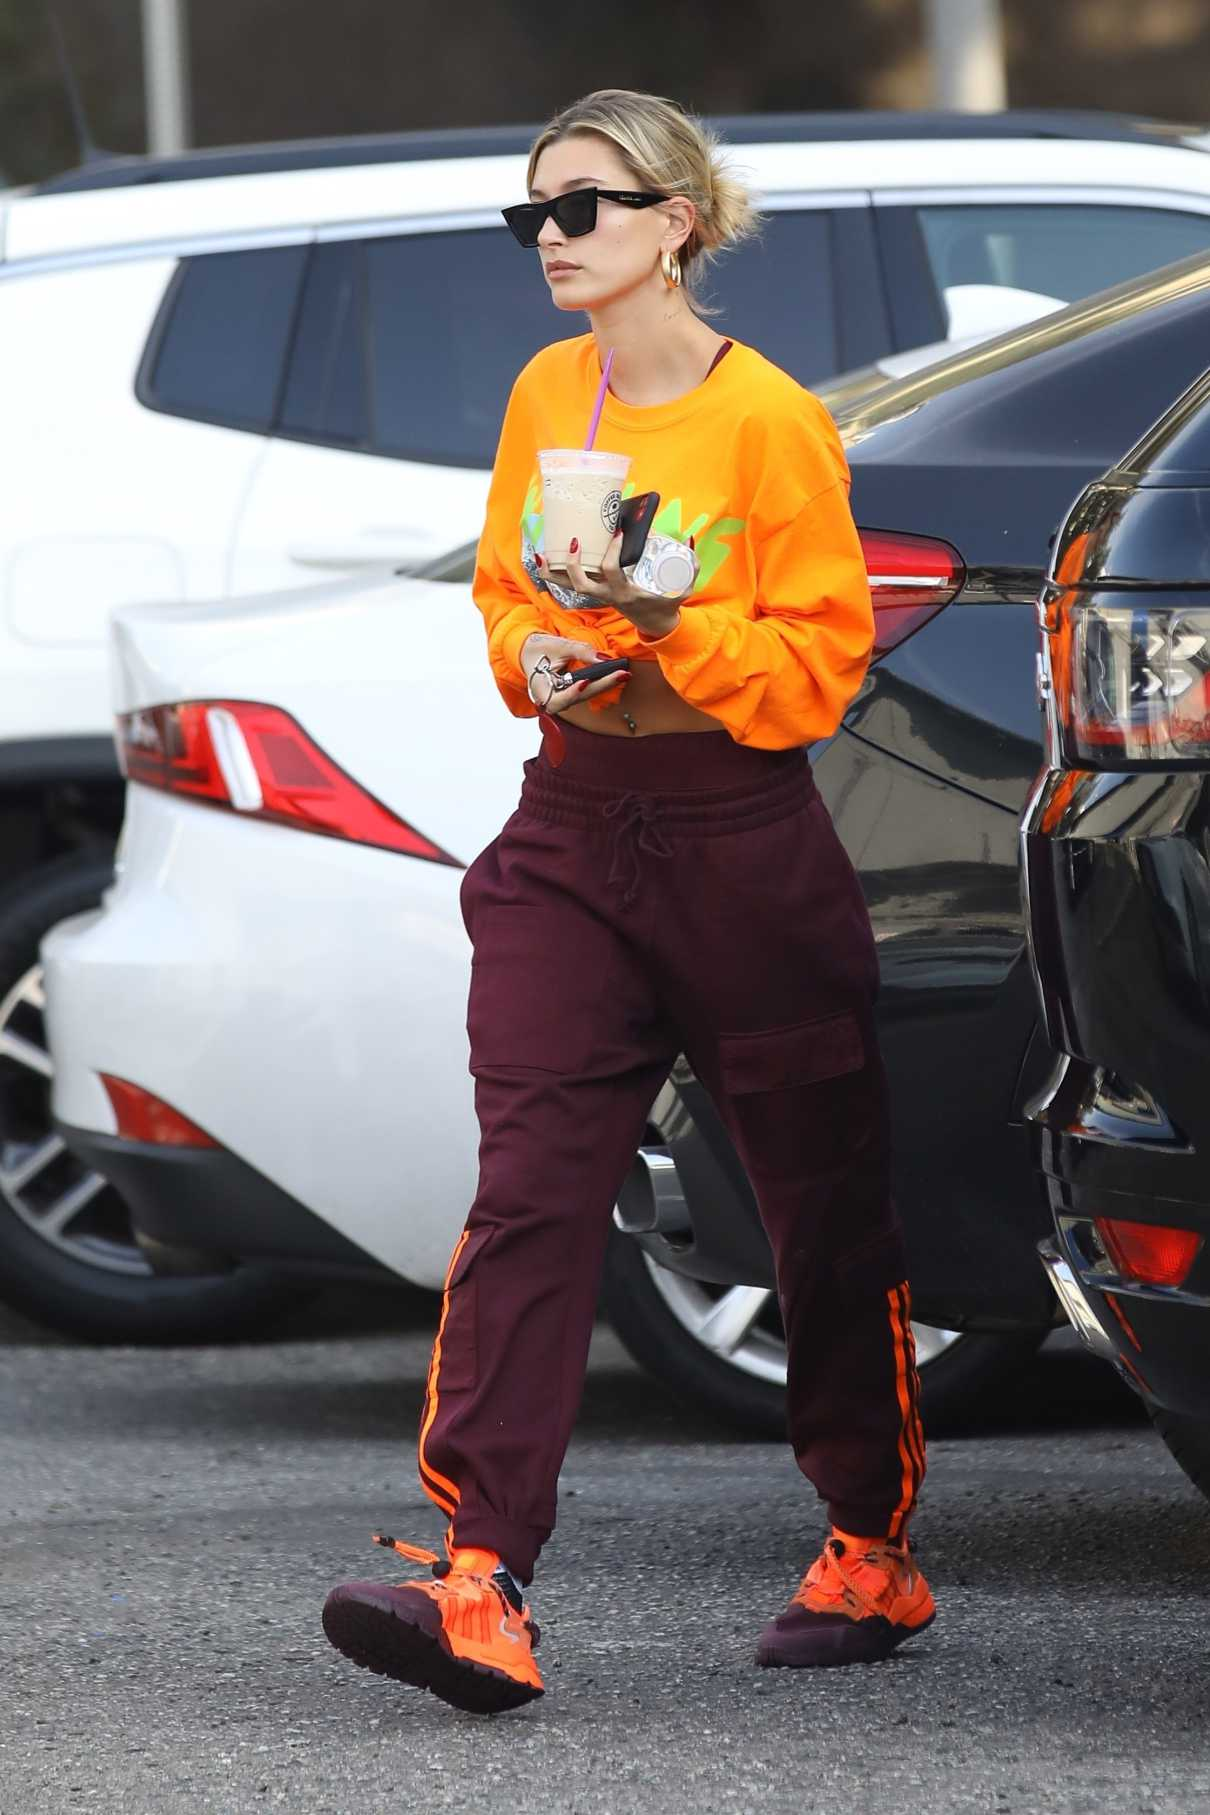 Hailey Bieber in an Orange Sweatshirt